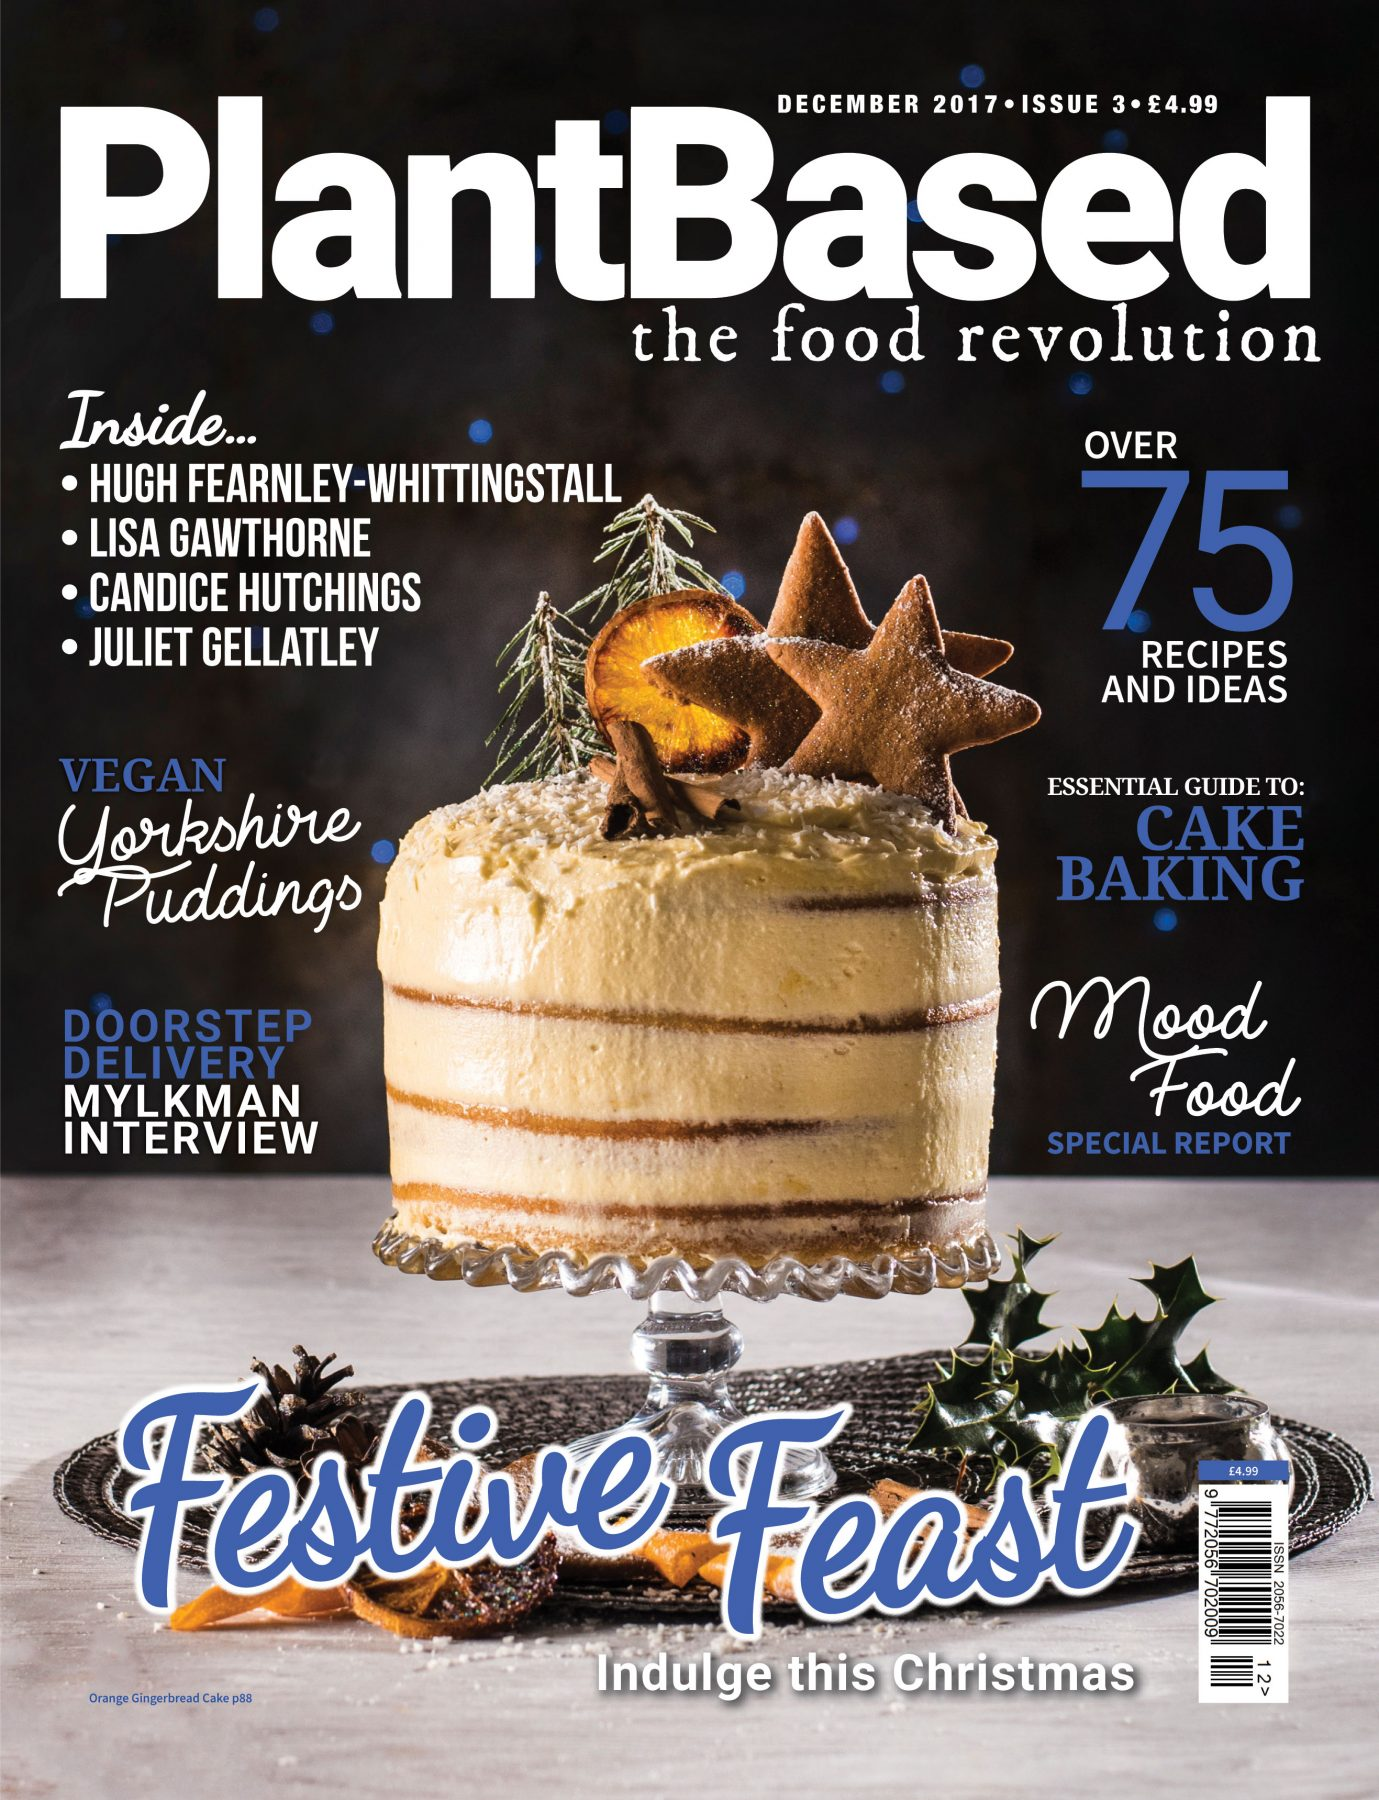 PlantBased-cover-December-issue-3-for-web